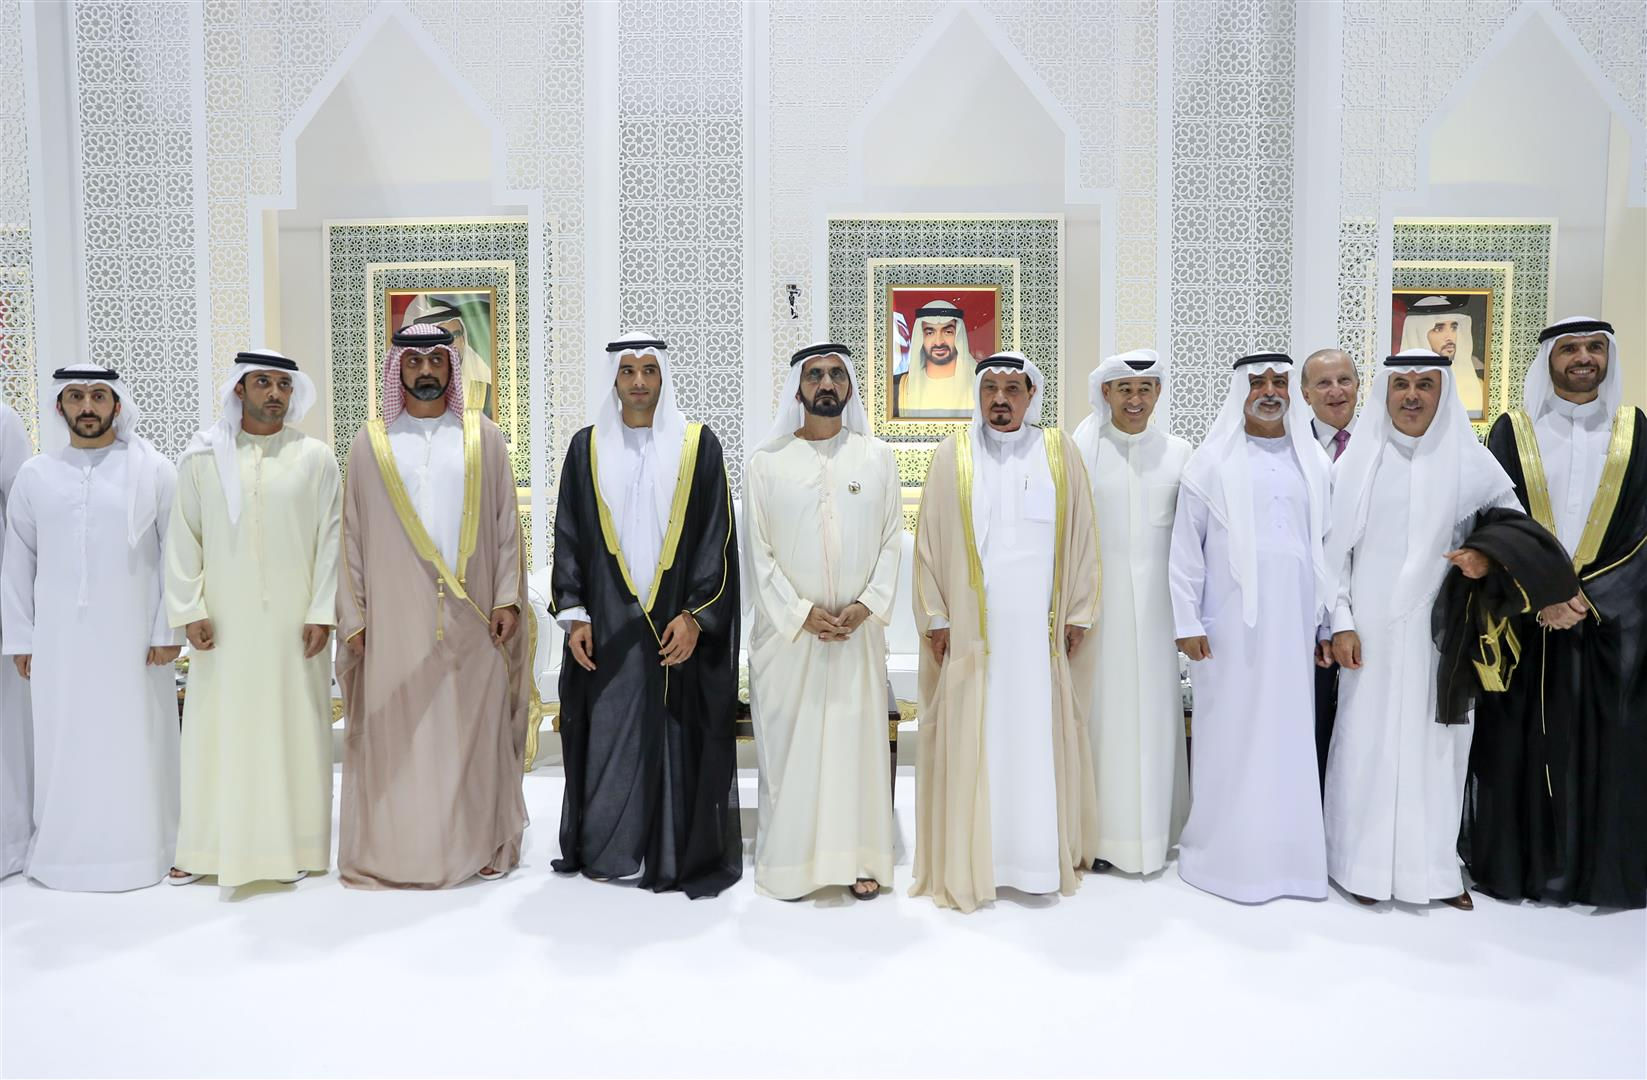 VP, Mohamed bin Zayed and Rulers attend Al Abbar and Al